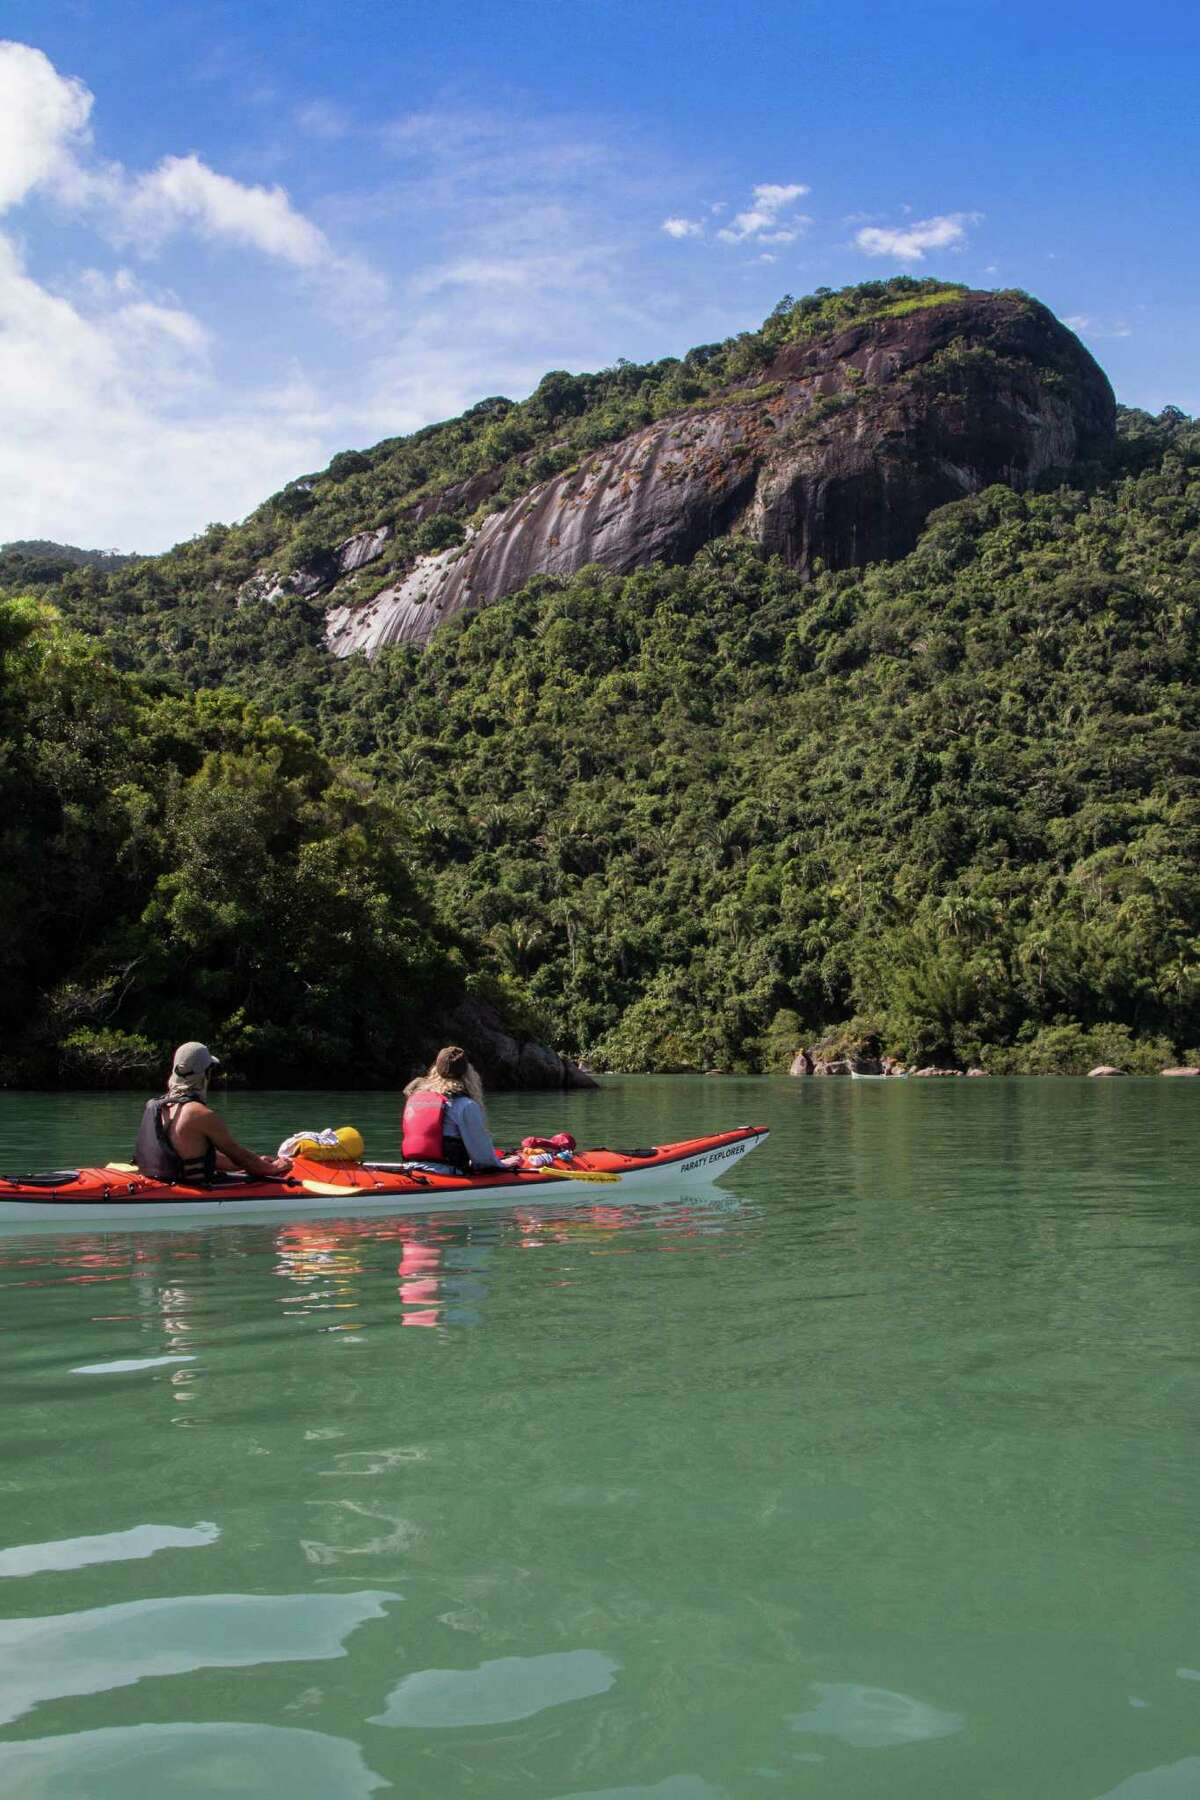 Kayakers get a close-up view of the turquoise waters and emerald foliage of Brazil's Costa Verde.